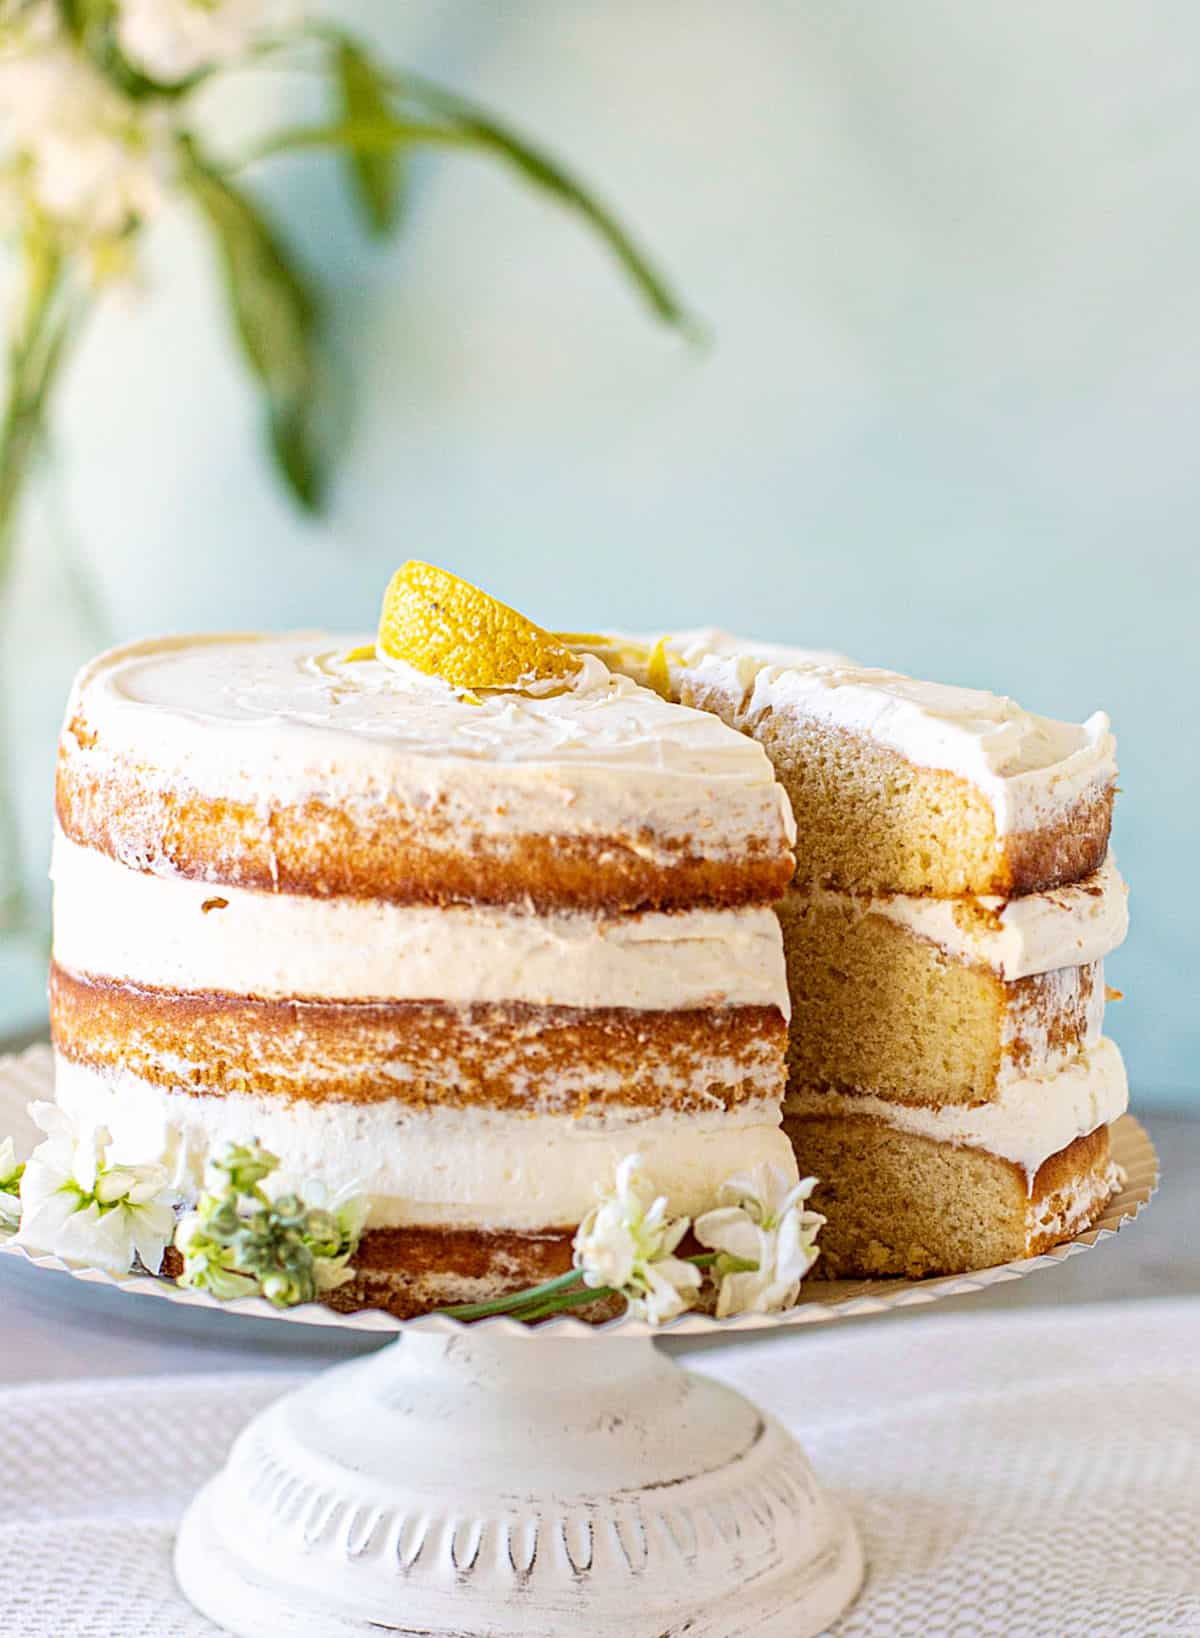 Whole naked cream layer cake on white cake stand, slice being pulled out, green aqua background